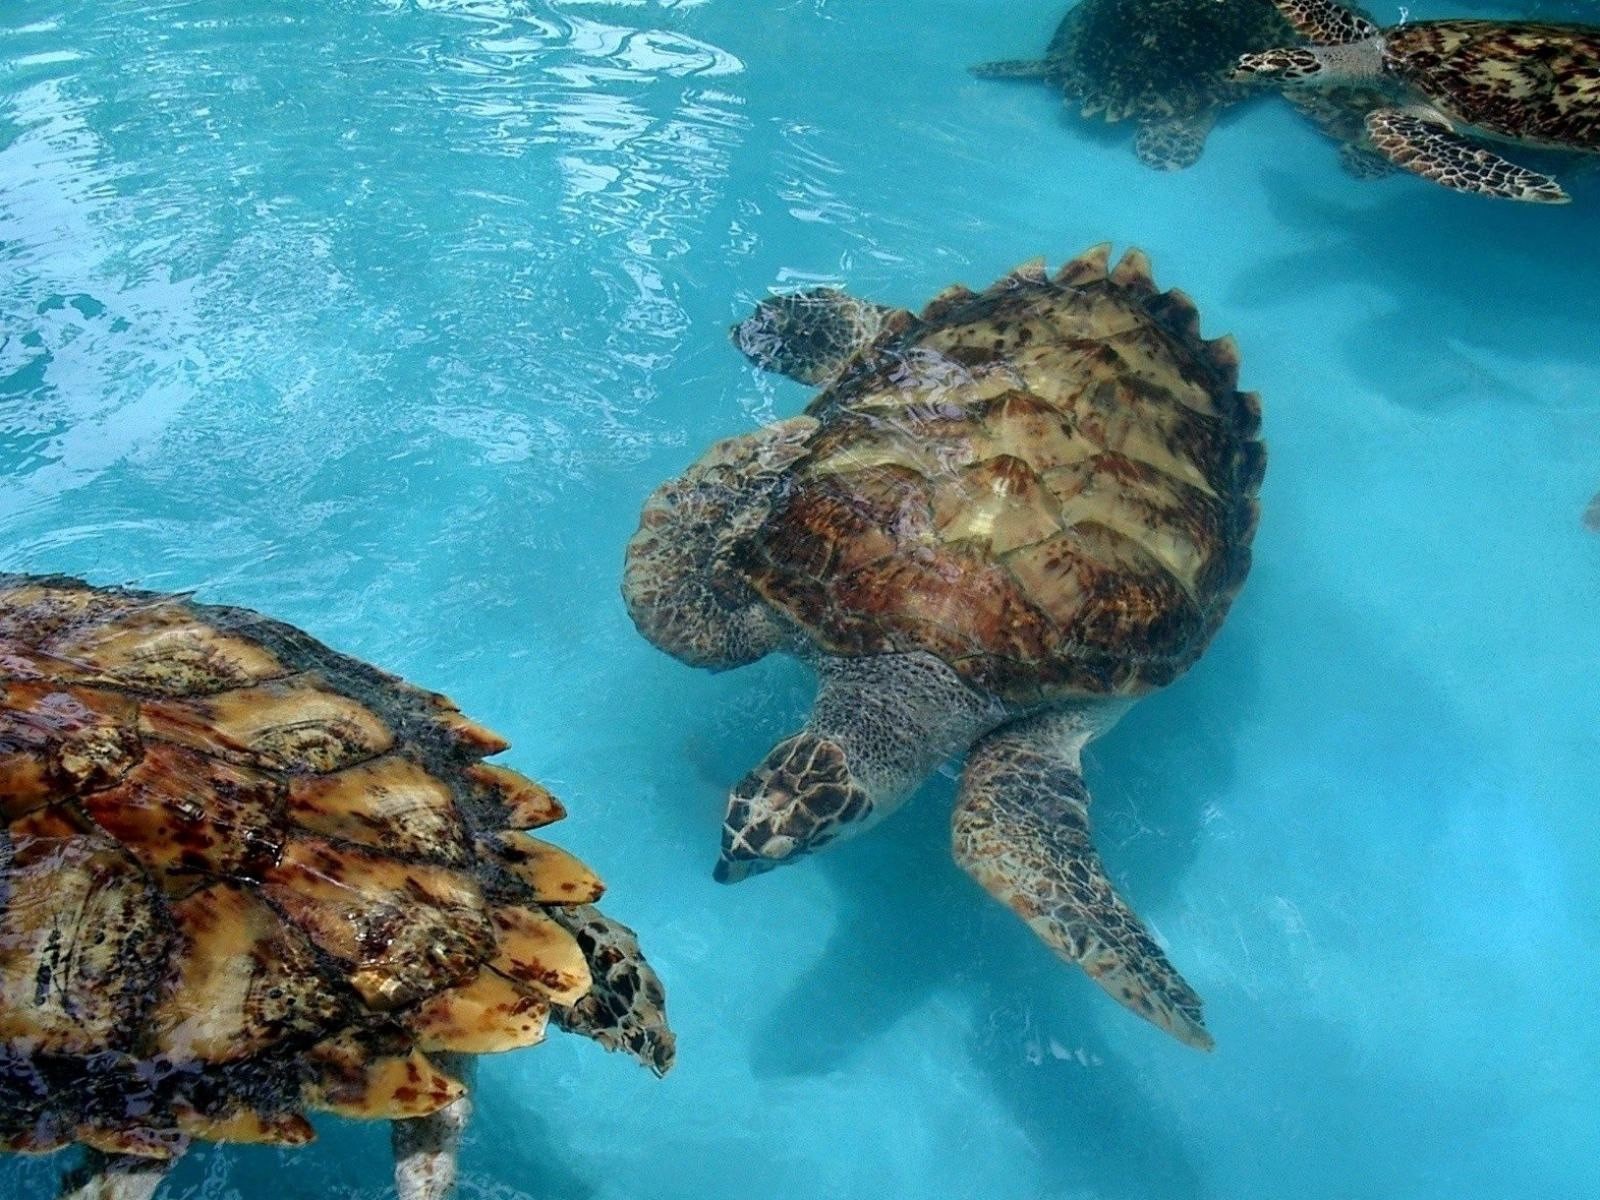 142153 download wallpaper Animals, Turtles, Sea, Family, Lot screensavers and pictures for free